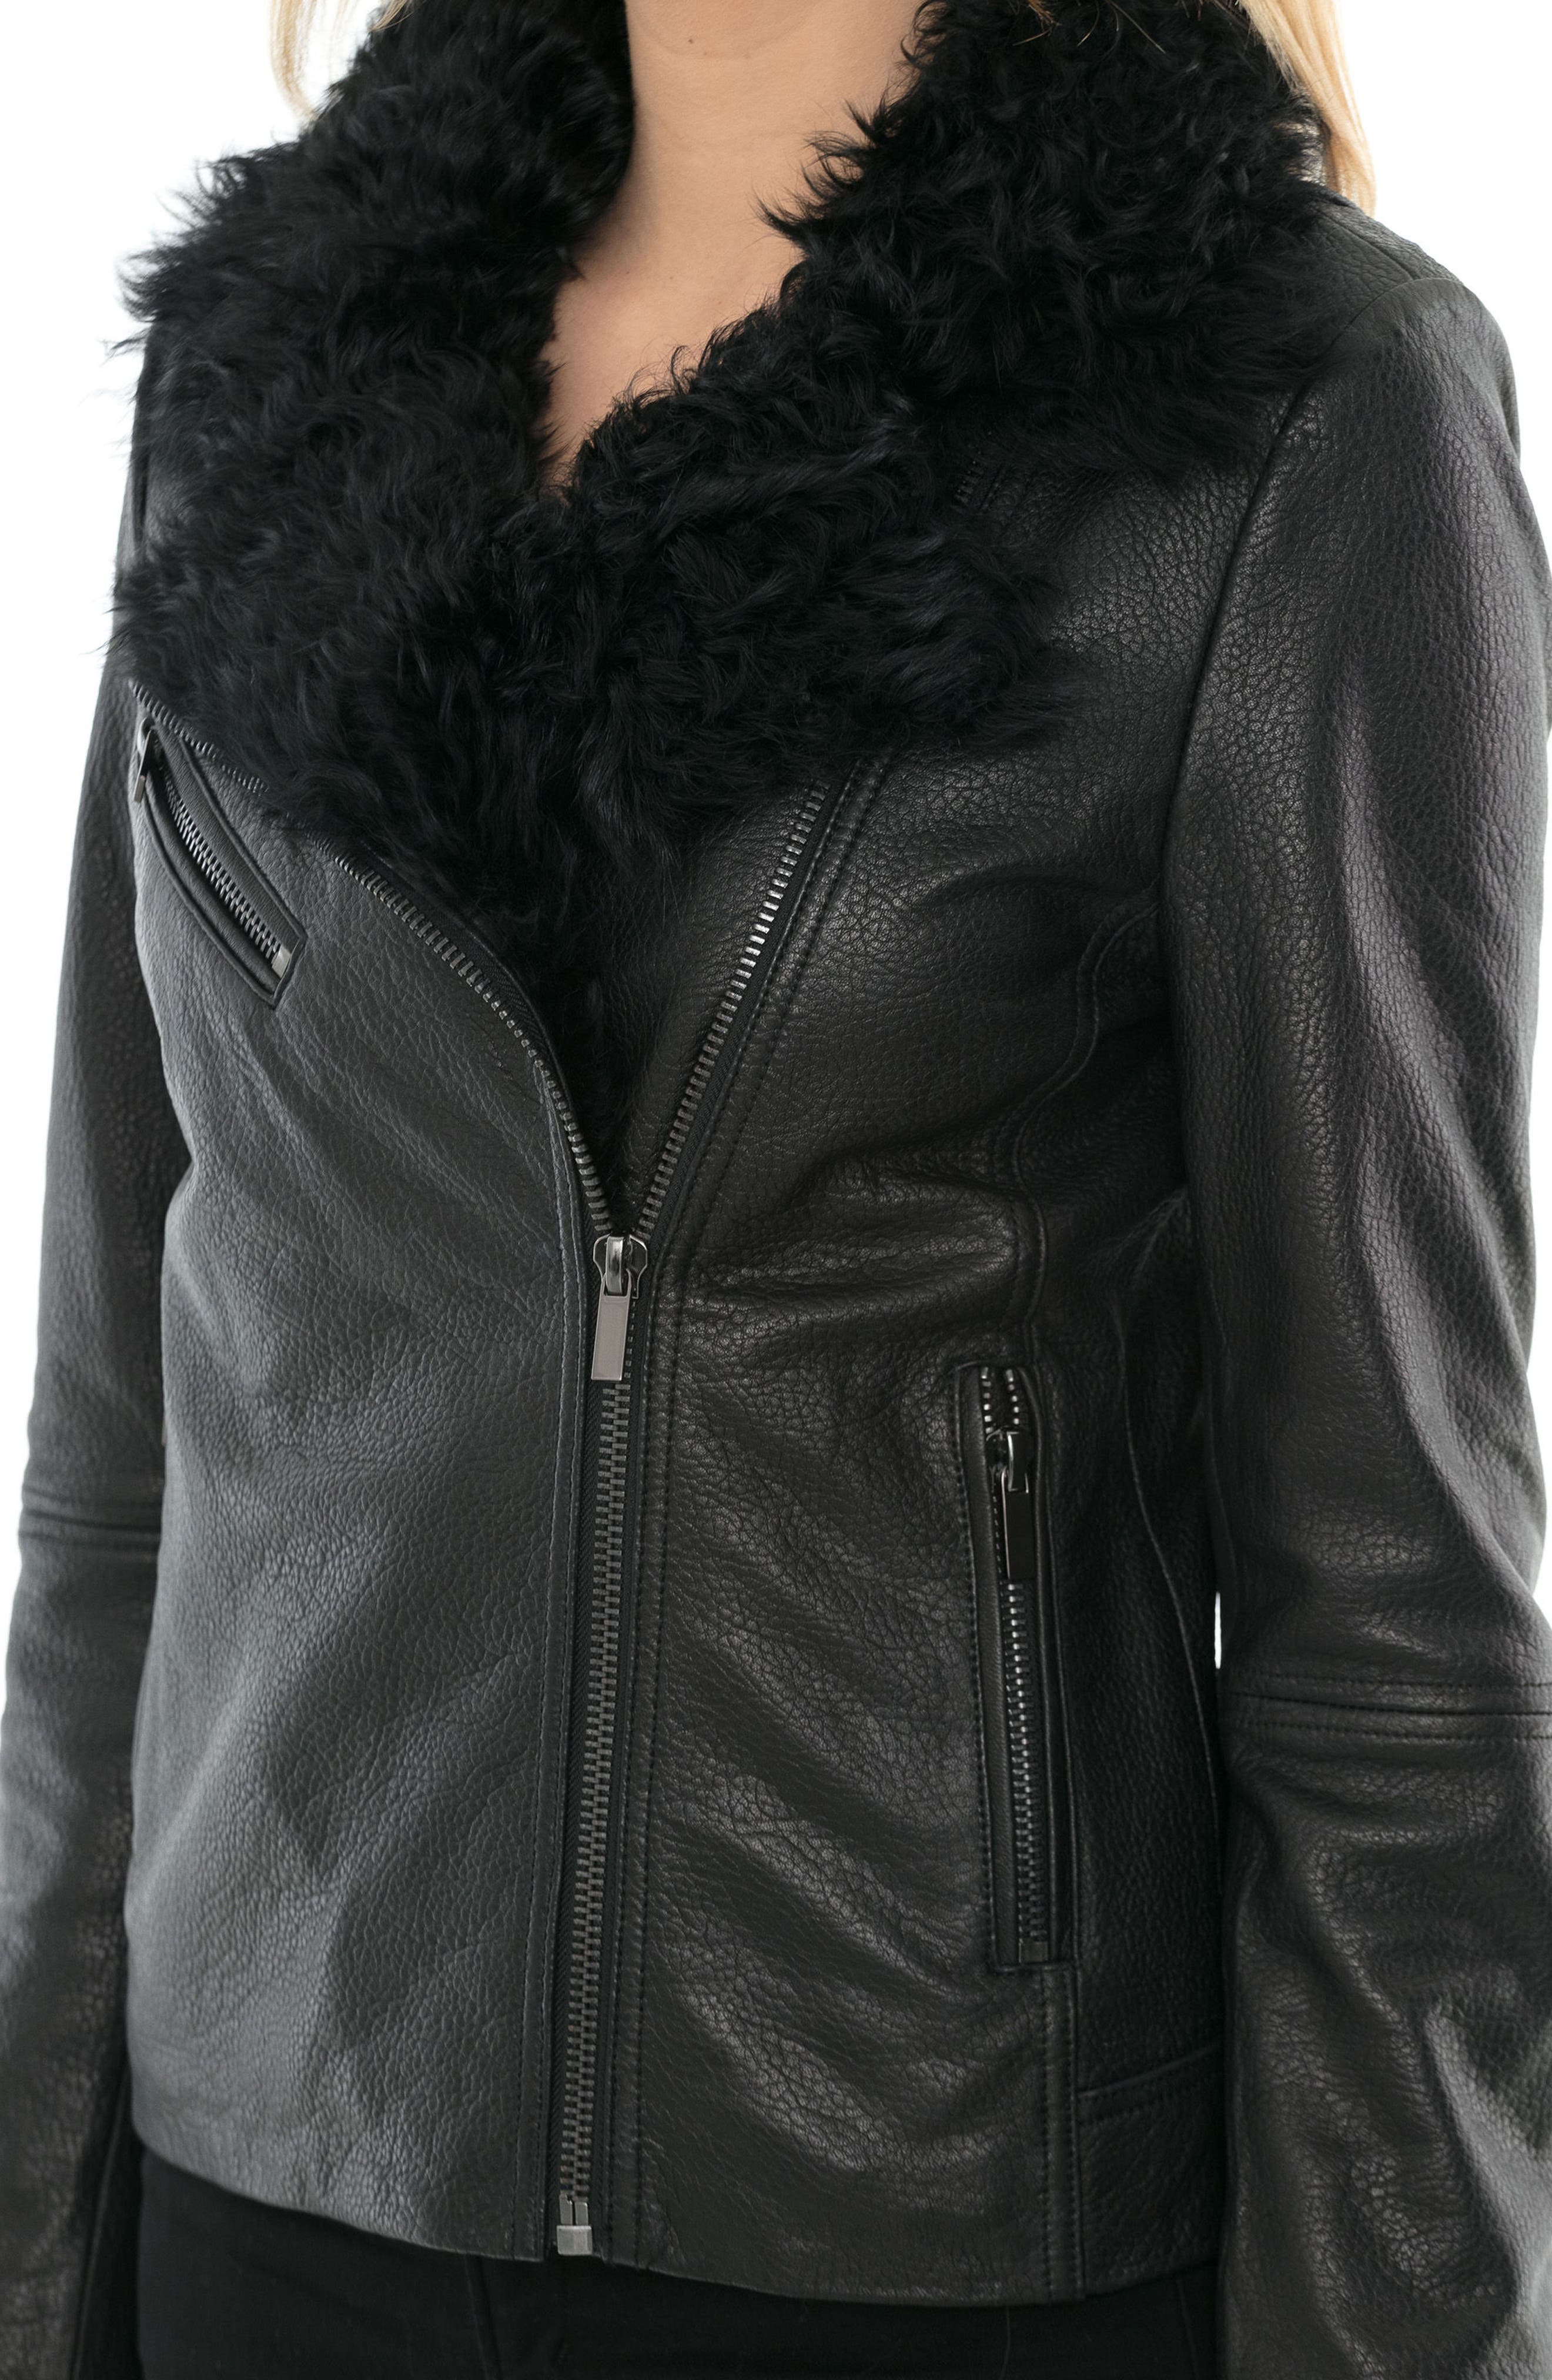 Marianne Genuine Shearling Collar Moto Jacket,                             Alternate thumbnail 4, color,                             Black